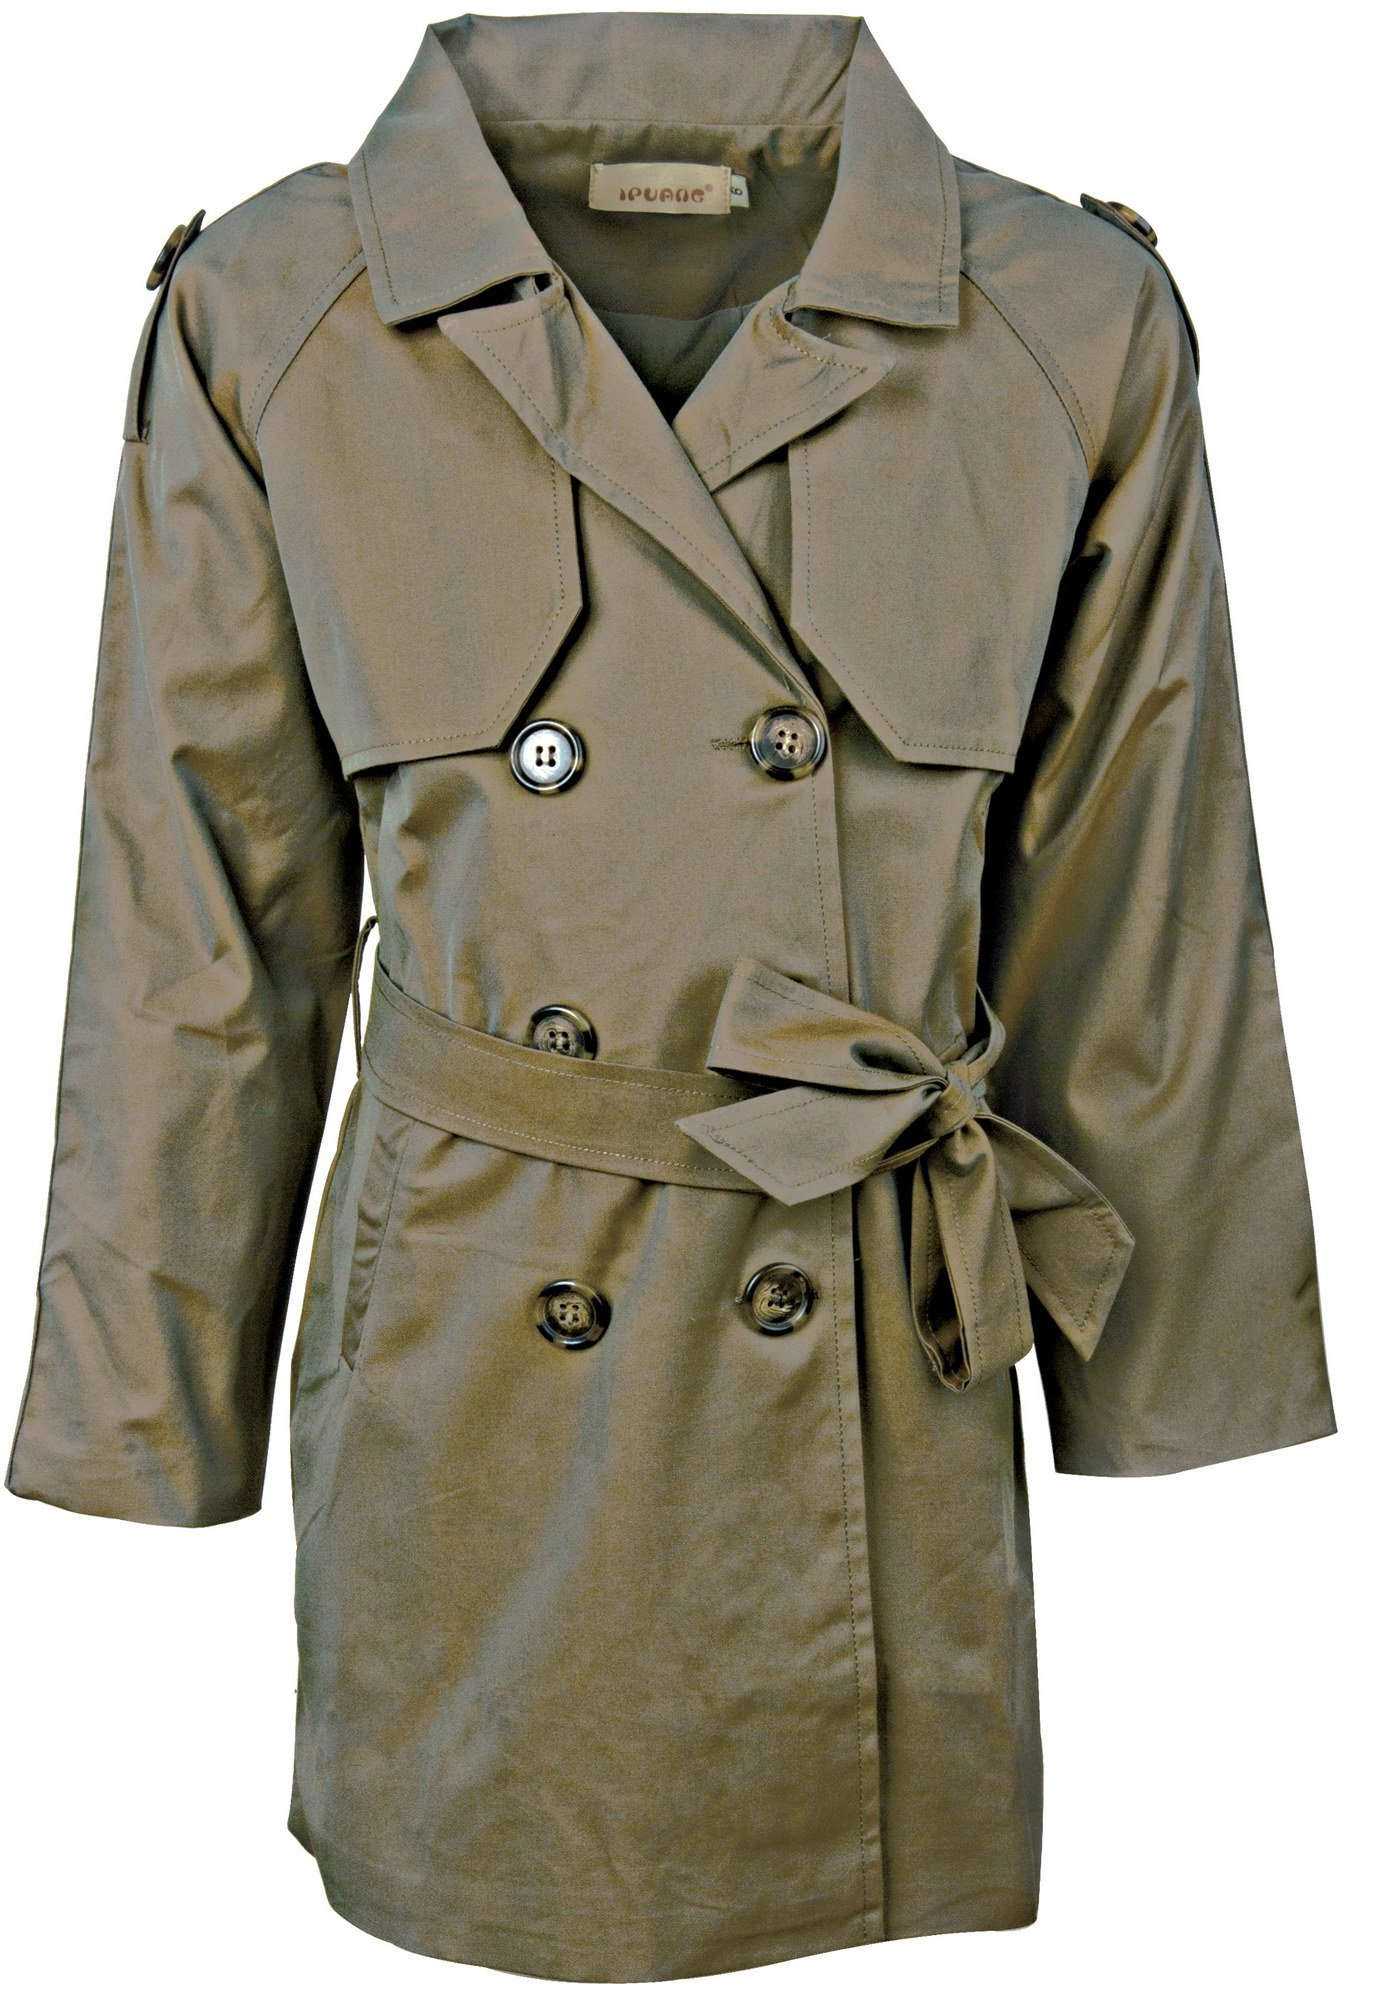 Ipuang Girl's Cotton Long Sleeves Trench Jacket Dress Coats Olive Waterproof 14